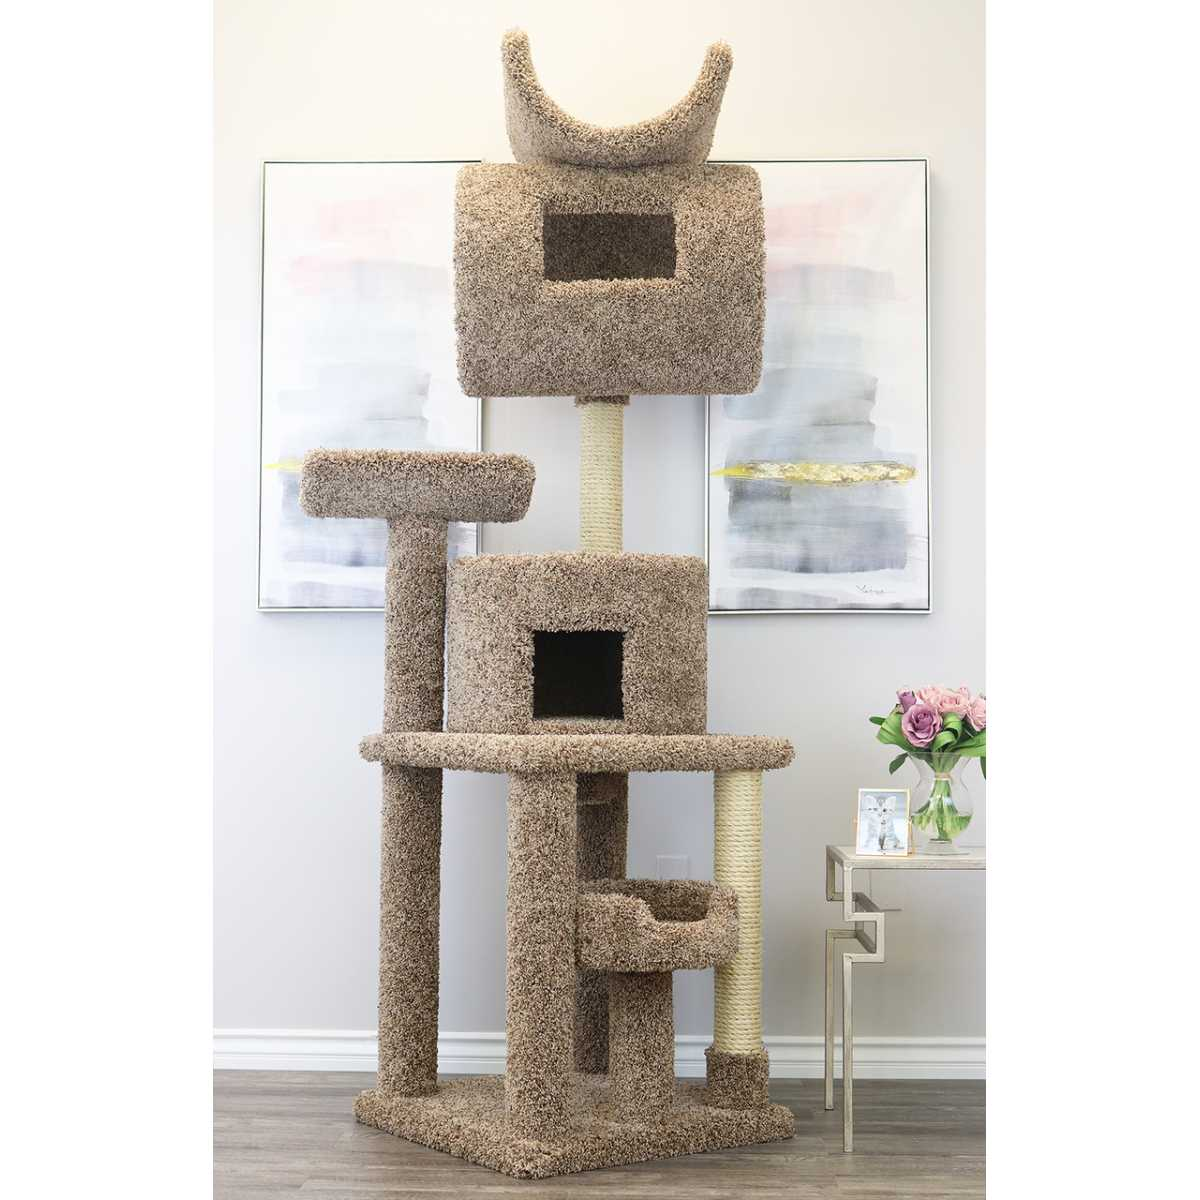 Cat's Choice 7 Foot Tall Carpeted Cat Tower